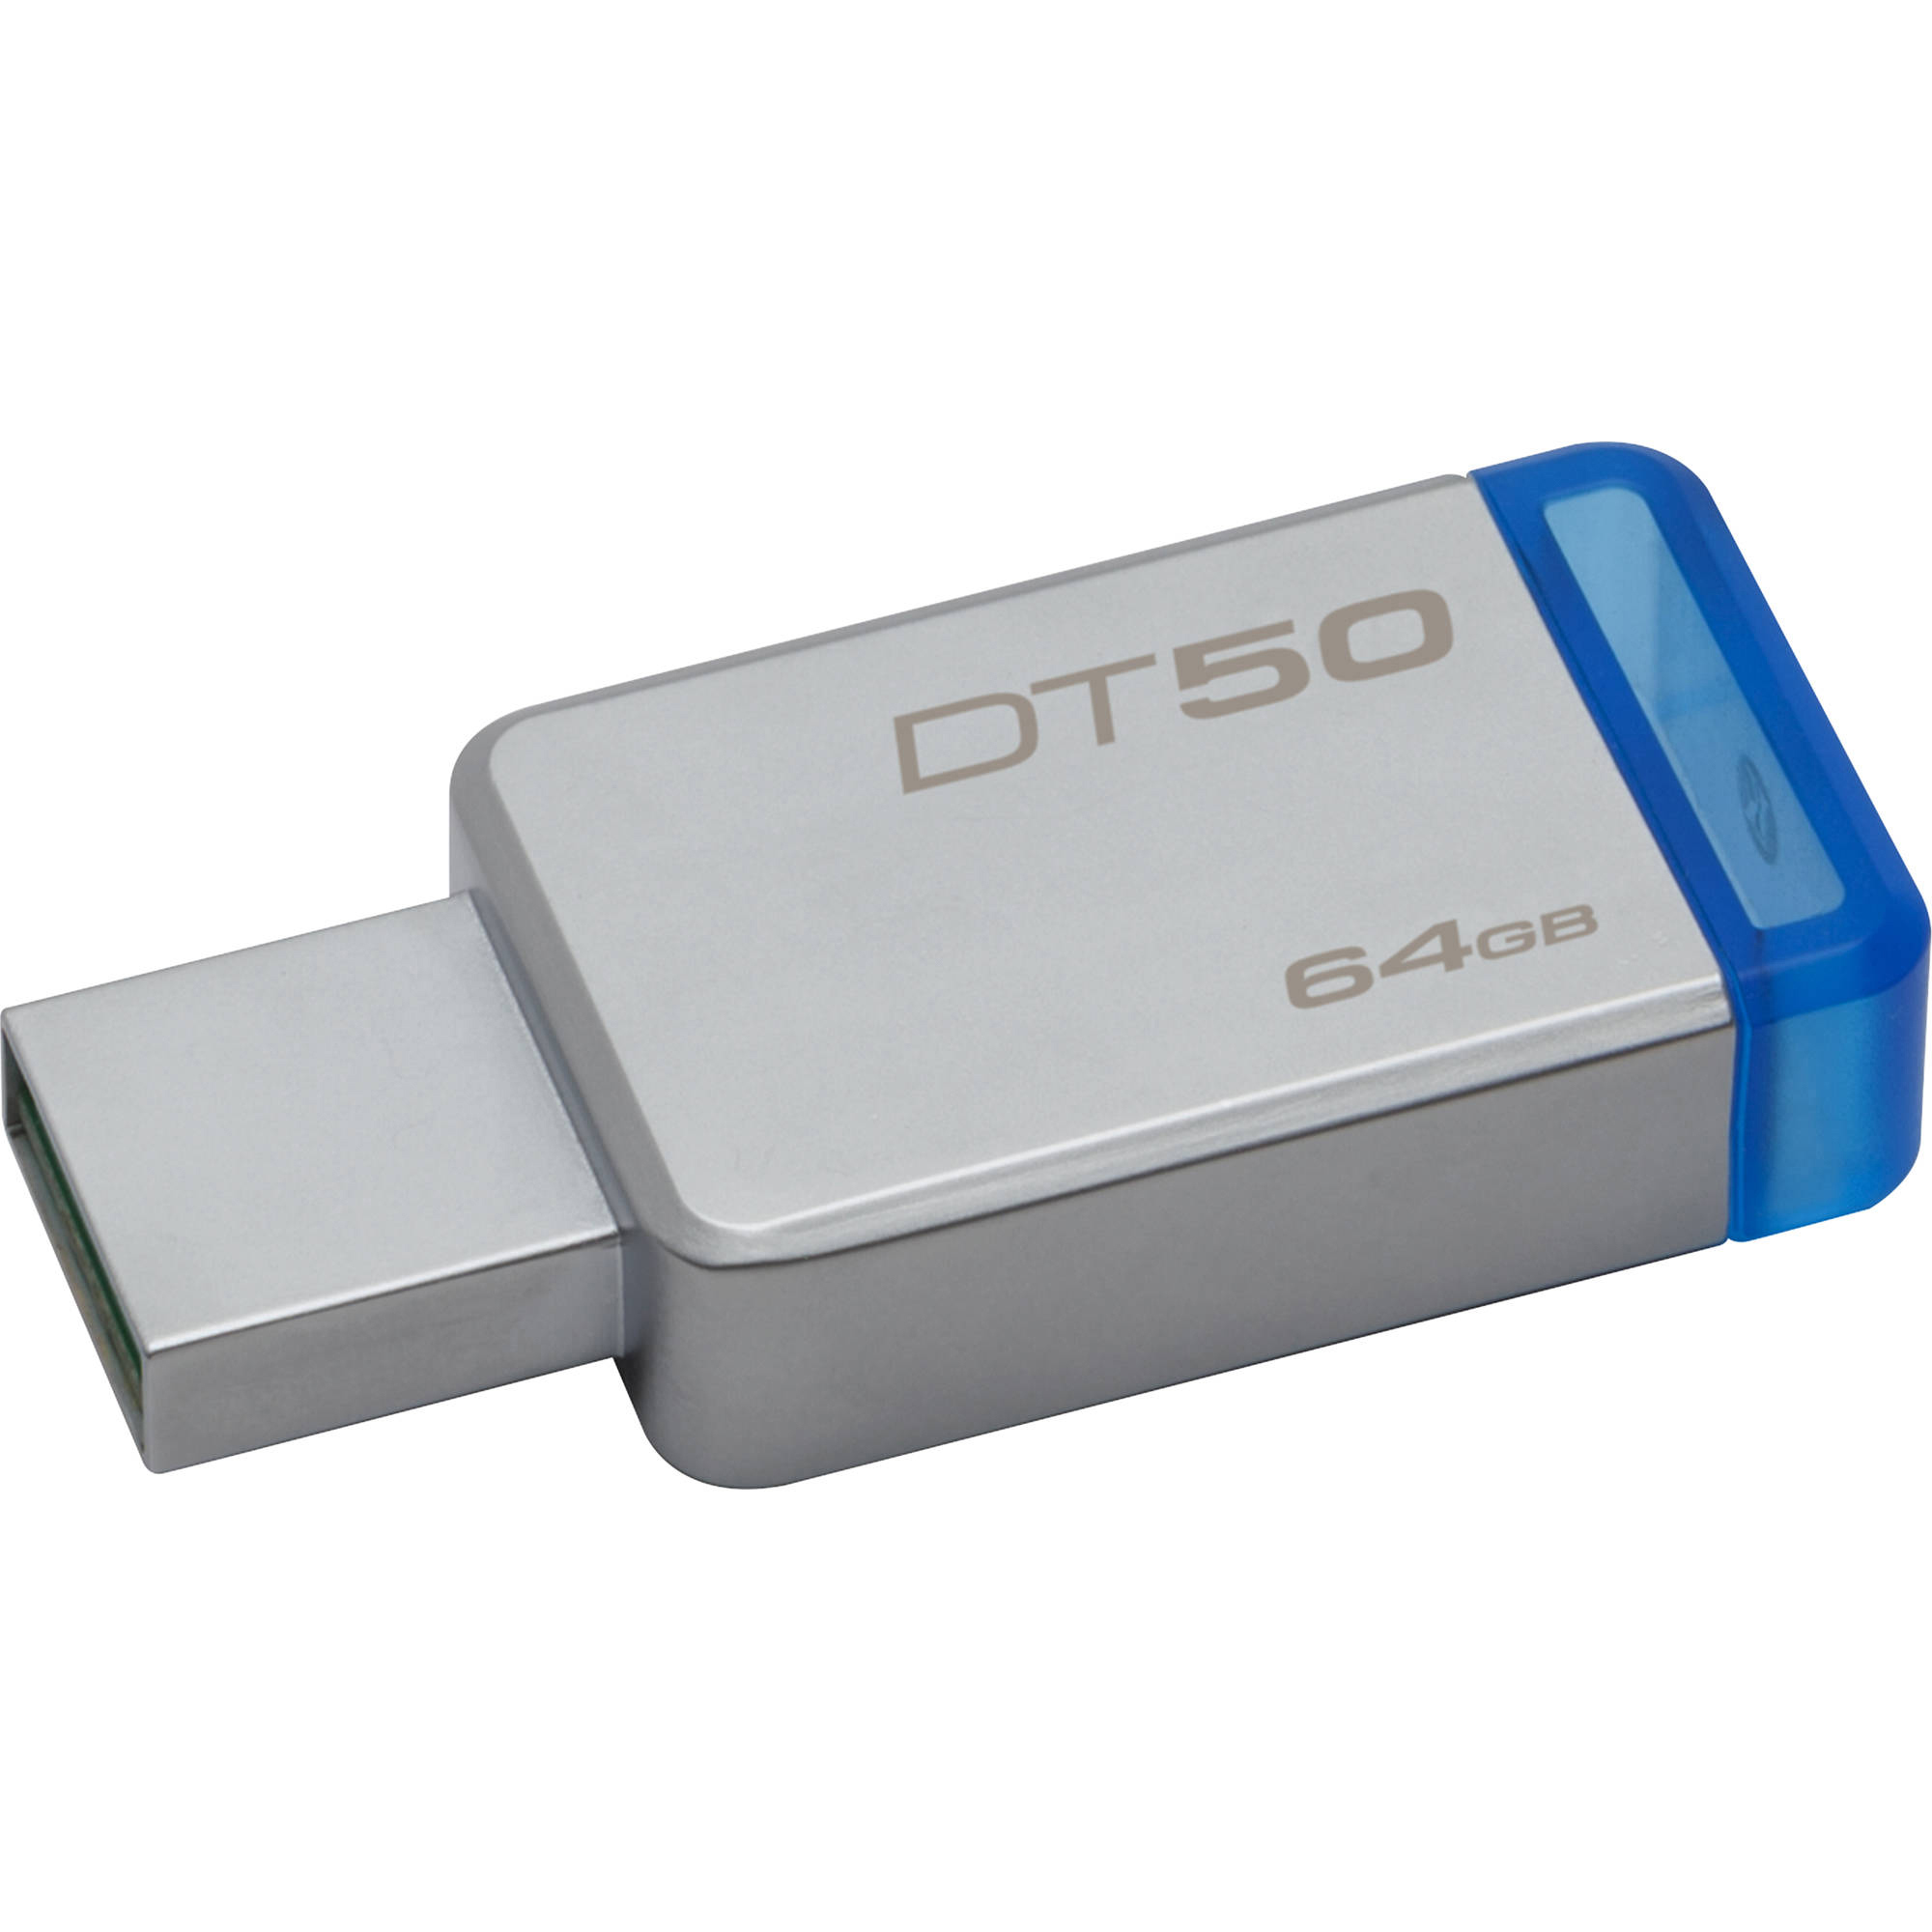 Original Kingston DataTraveler 50 64GB USB 3.0 Flash Drive (DT50/64GB)